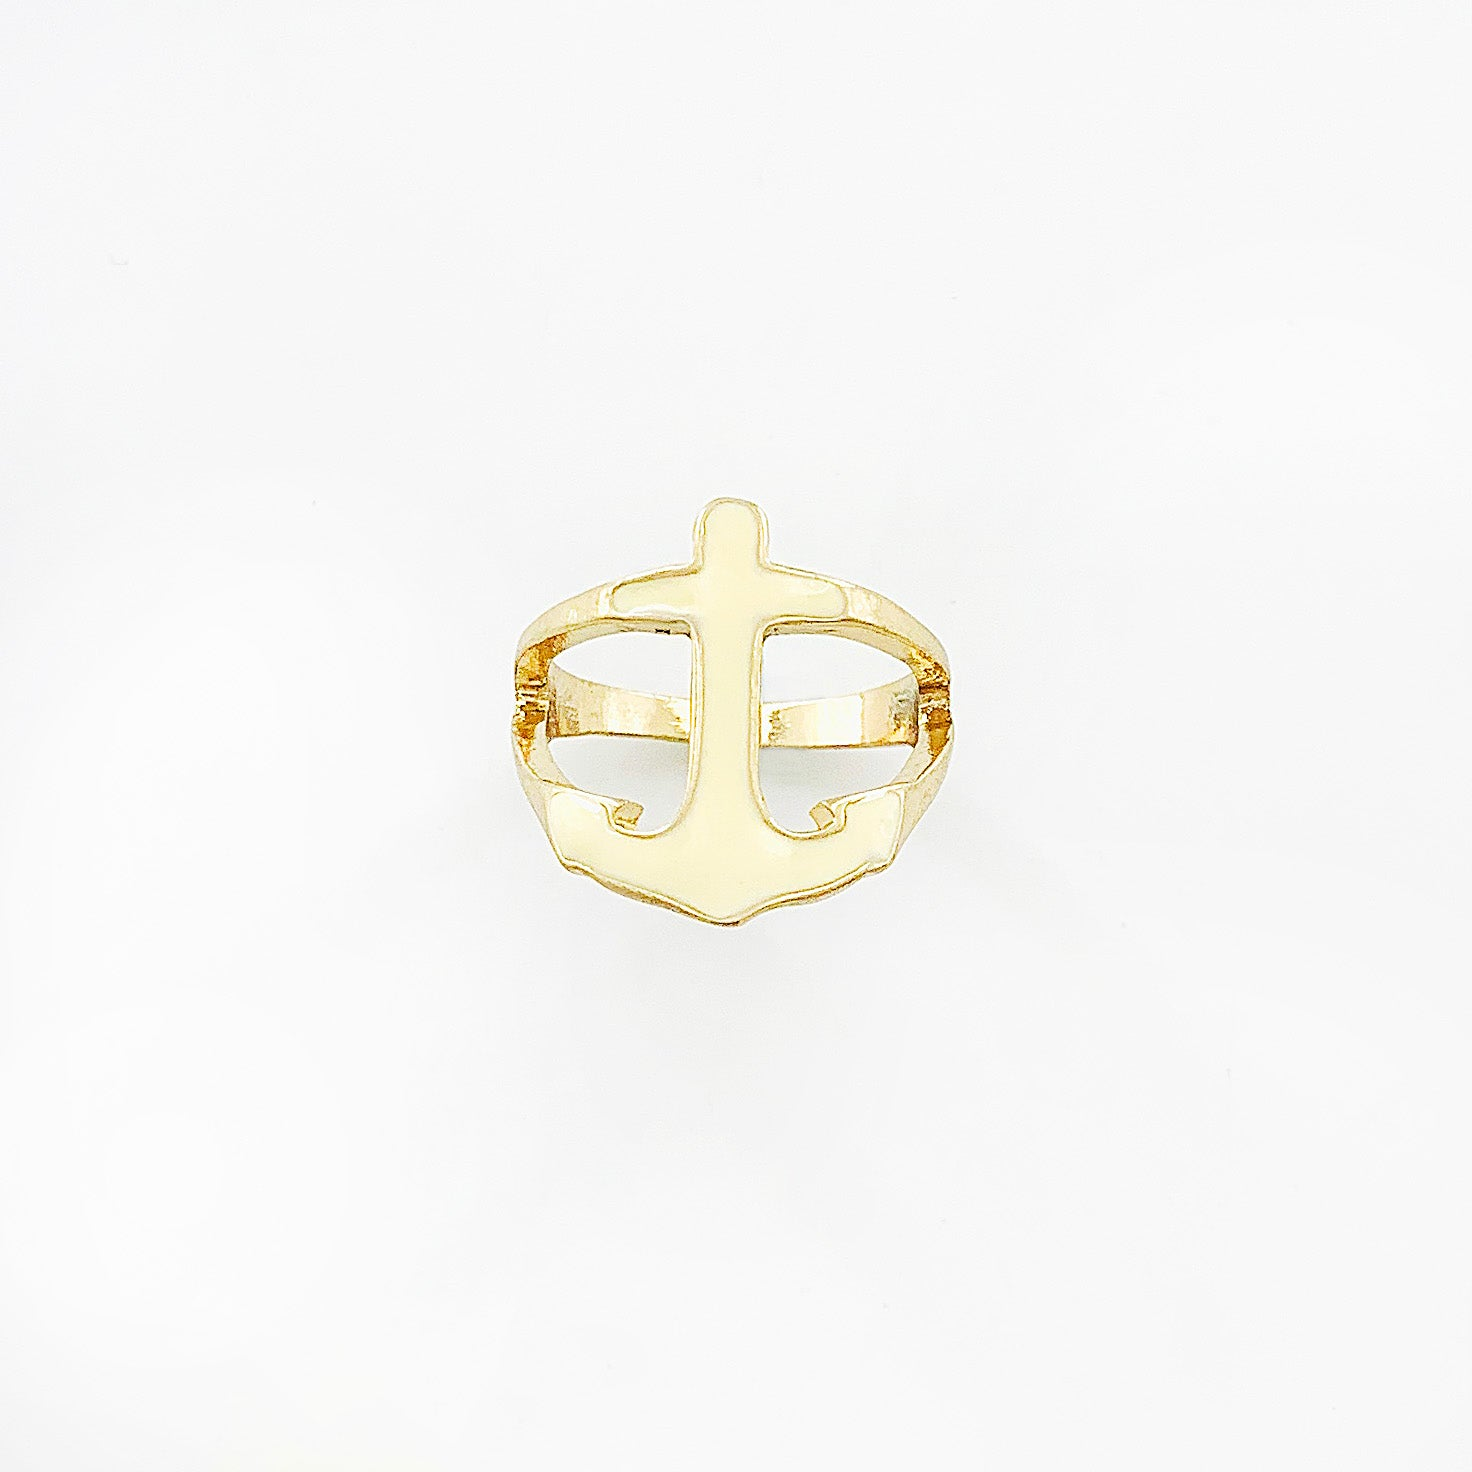 Gold ring with white enamel-printed anchor